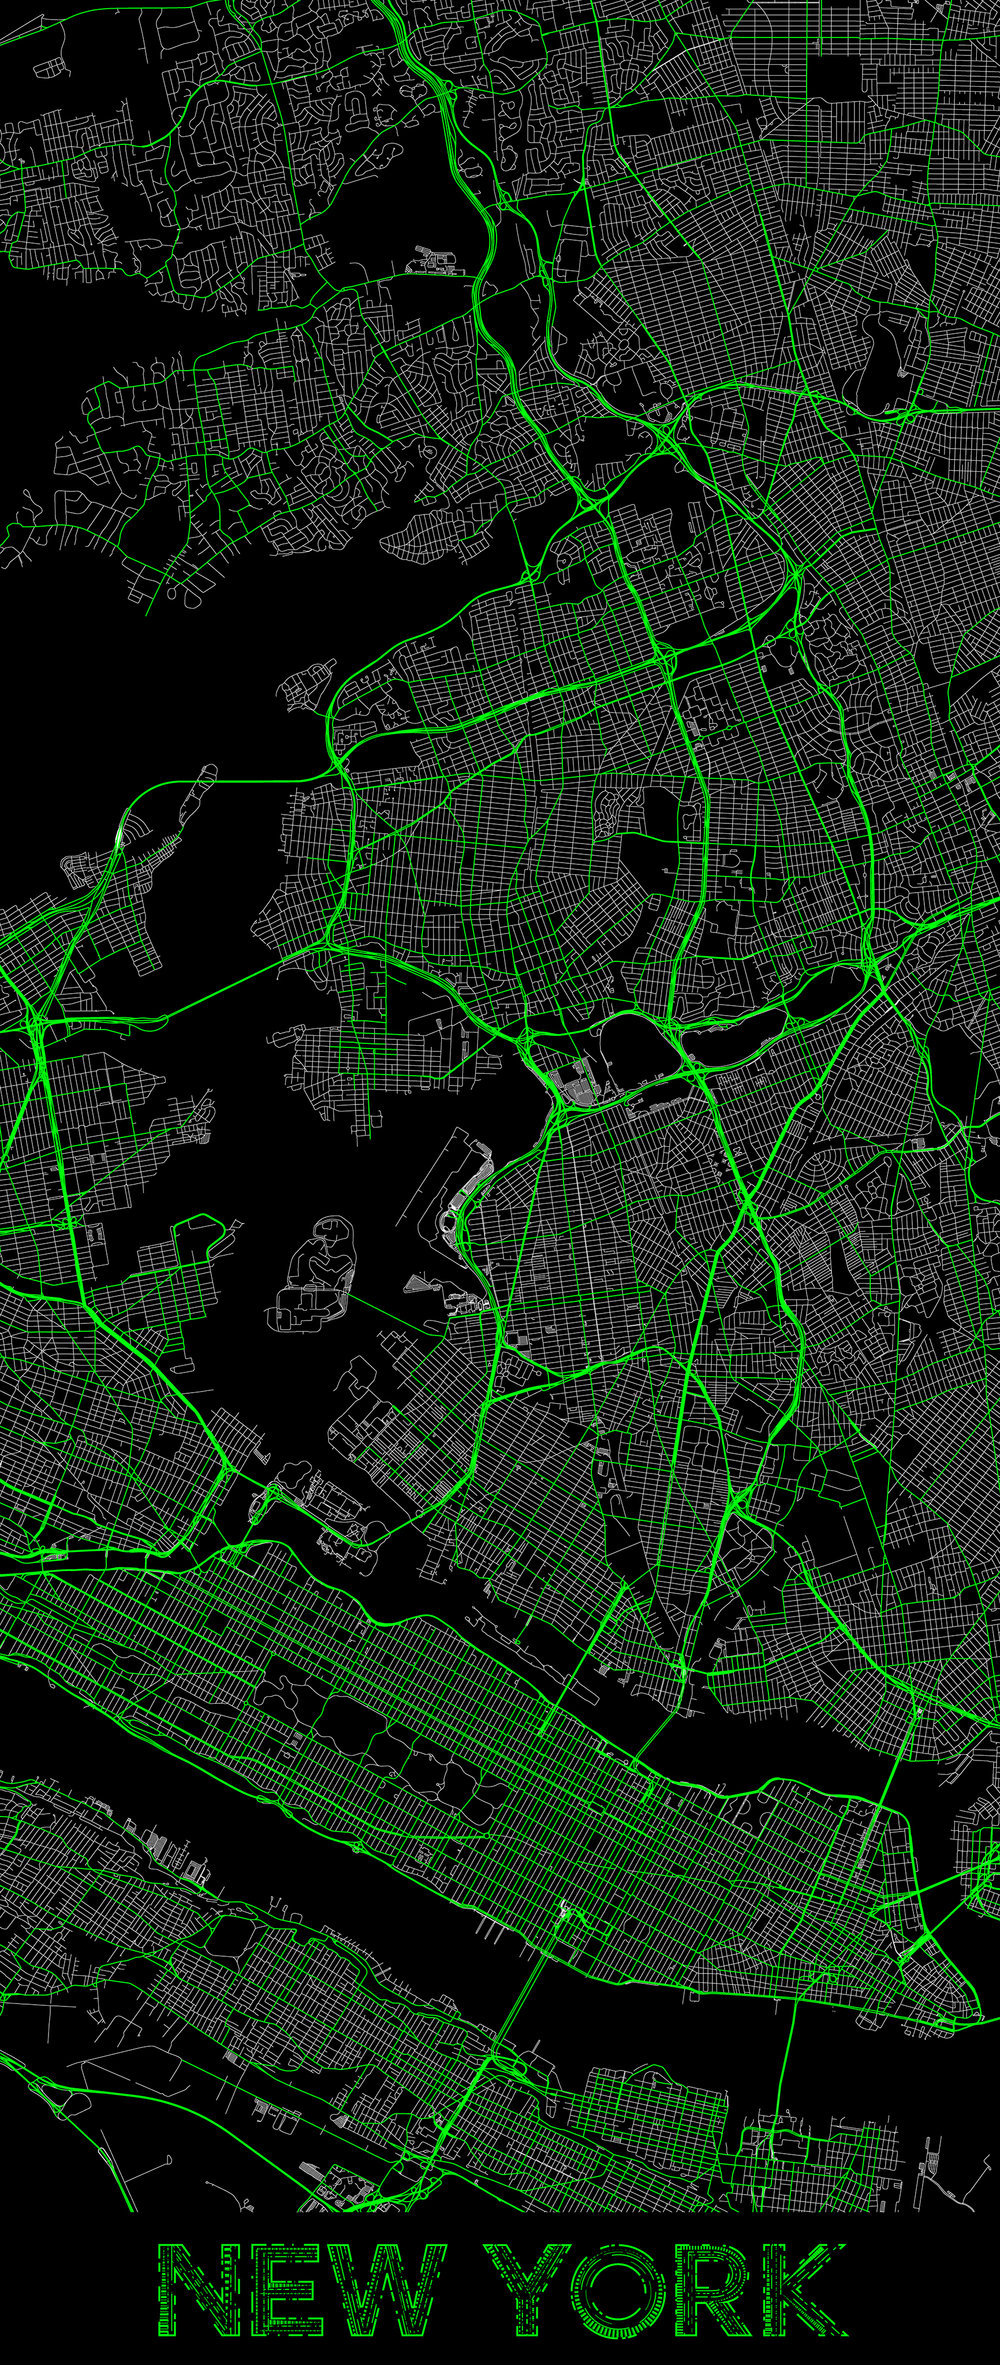 City map illustration of New York created using Maperitive, OpenStreetMap and Adobe Illustrator.